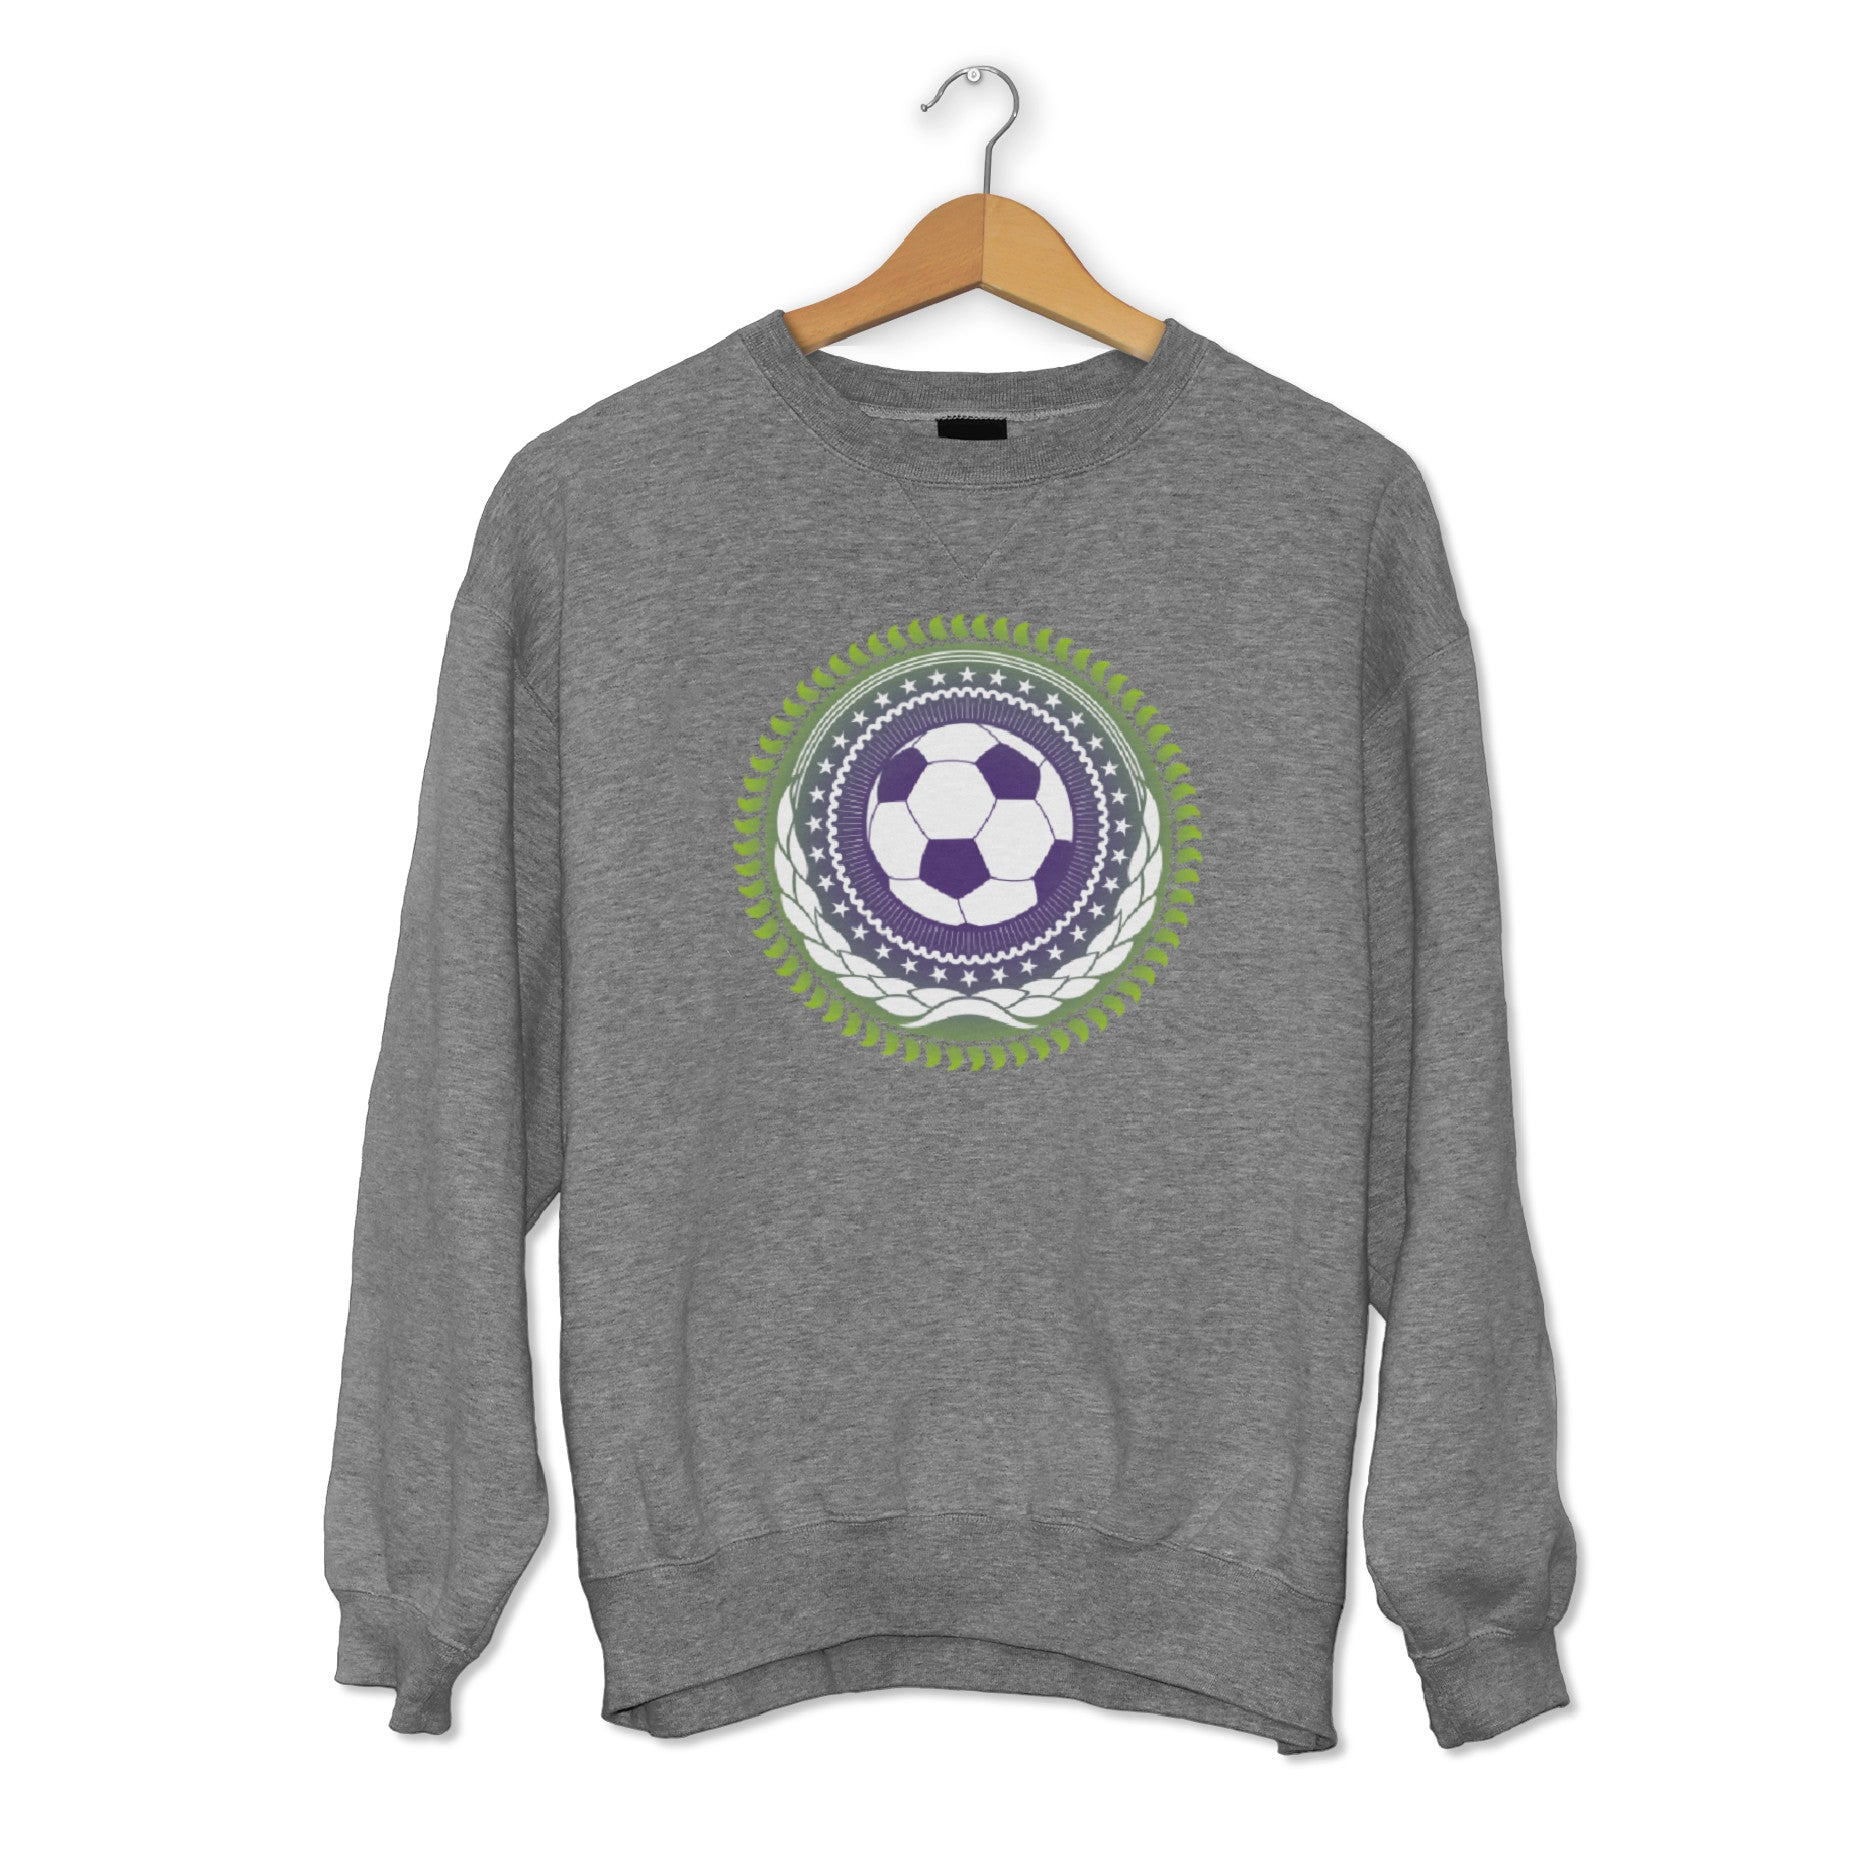 Creative Personalised Printed Designed Grey Sweatshirts Print Your Logo, Artwork, Photos Or Designs Perfect for a Birthday, Christmas Gift For The Home, Kitchen, Living Room, Bedroom, Office, Businesses, Restaurants, Pubs, Cafes, Bars And Parties Perfect Gift For Adults And Children